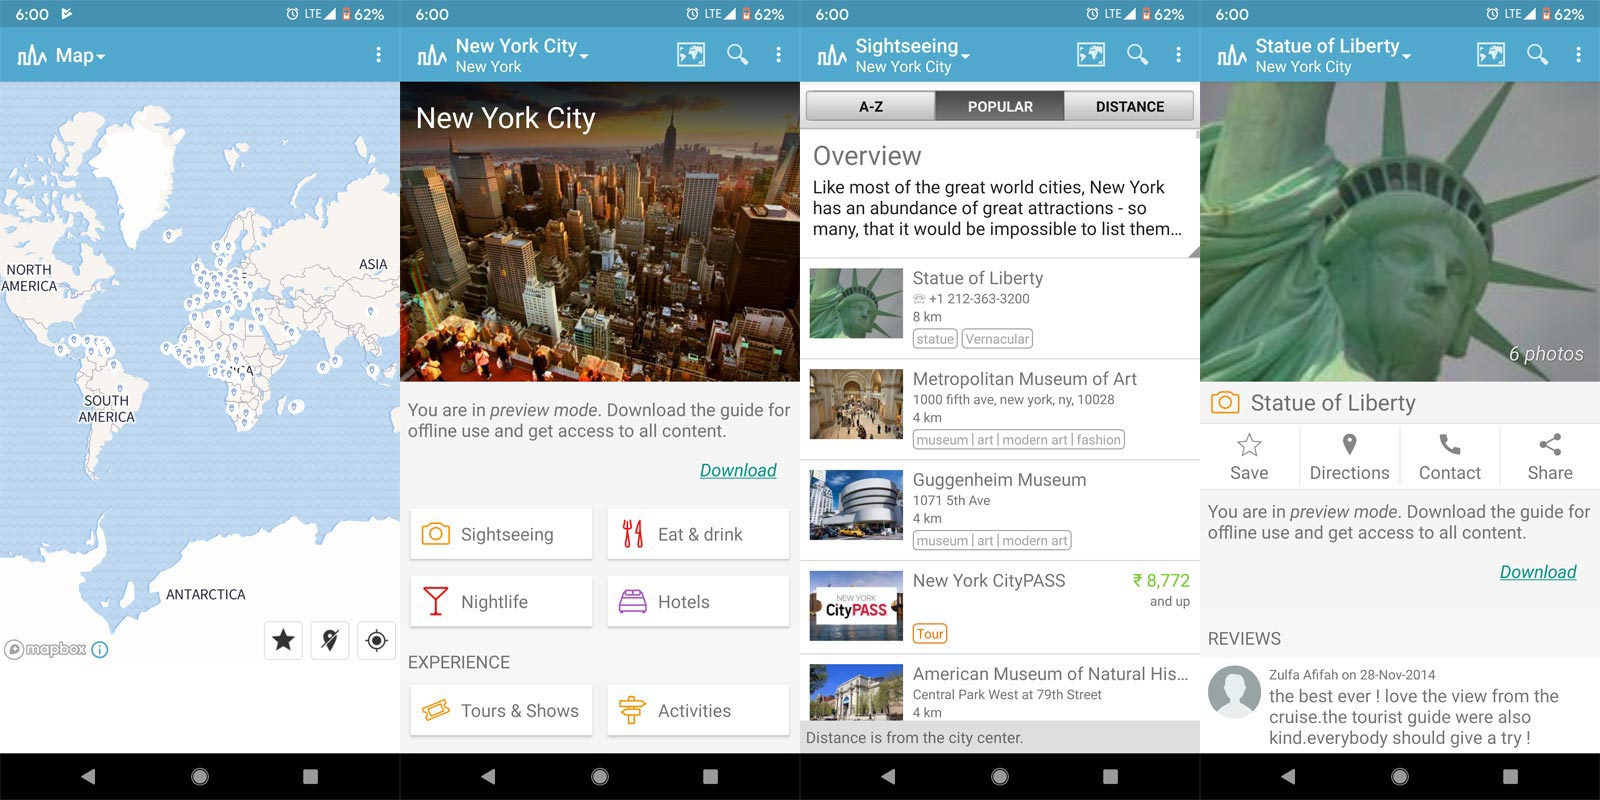 World Travel Guide by Triposo